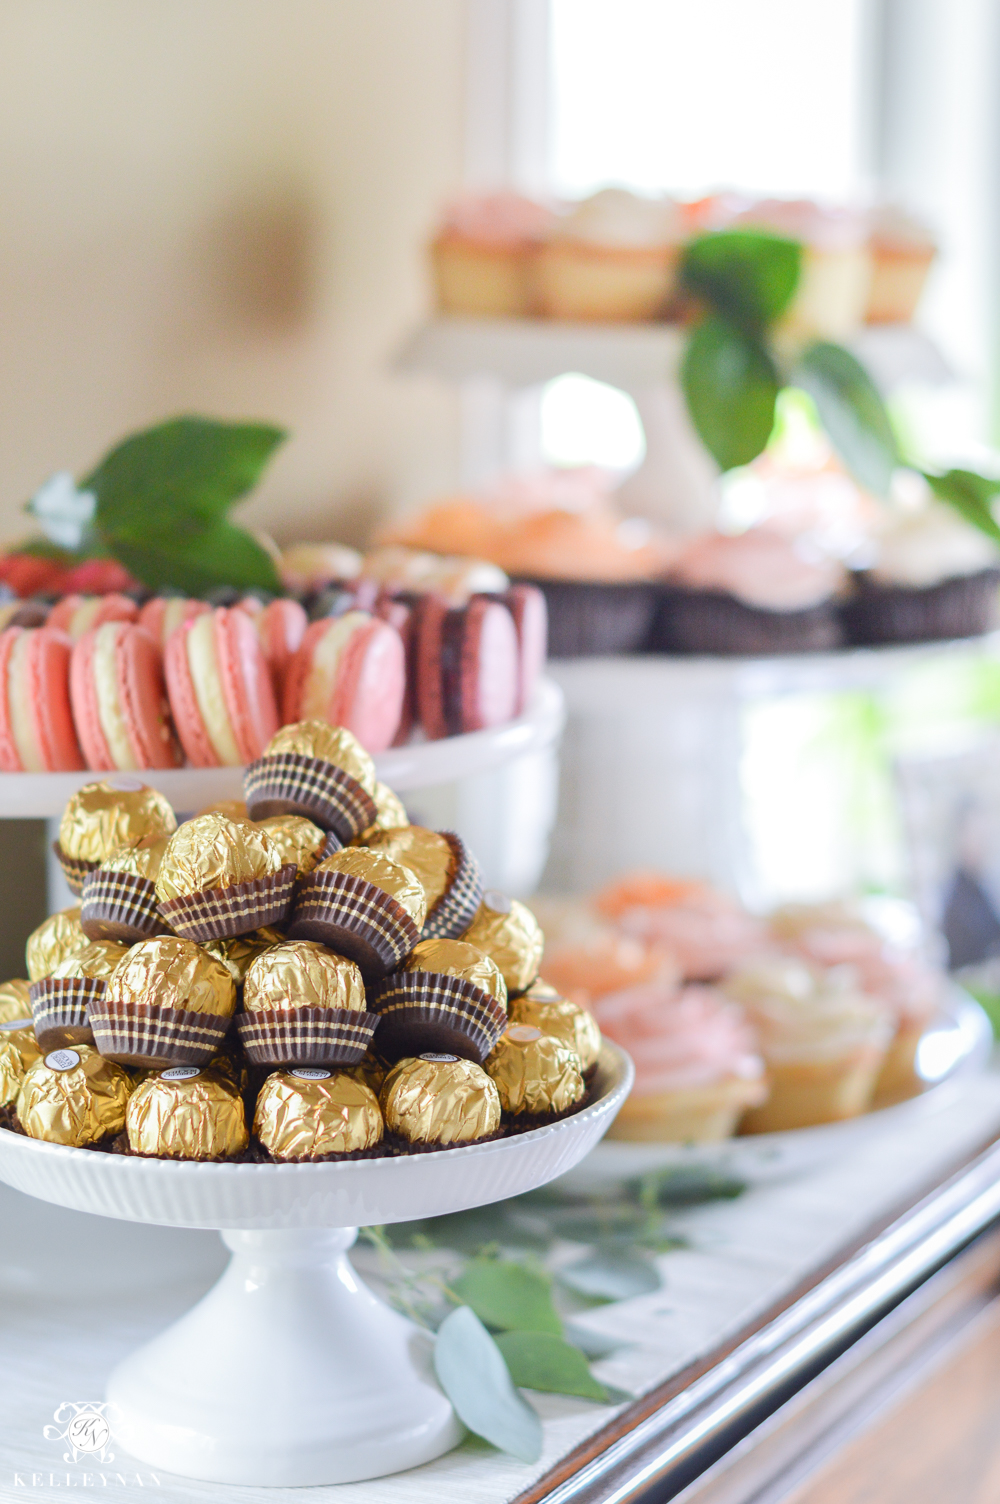 Southern Garden Party Bridal Shower Ideas- Dessert Table- Macarons, cupcakes, ferrier rocher